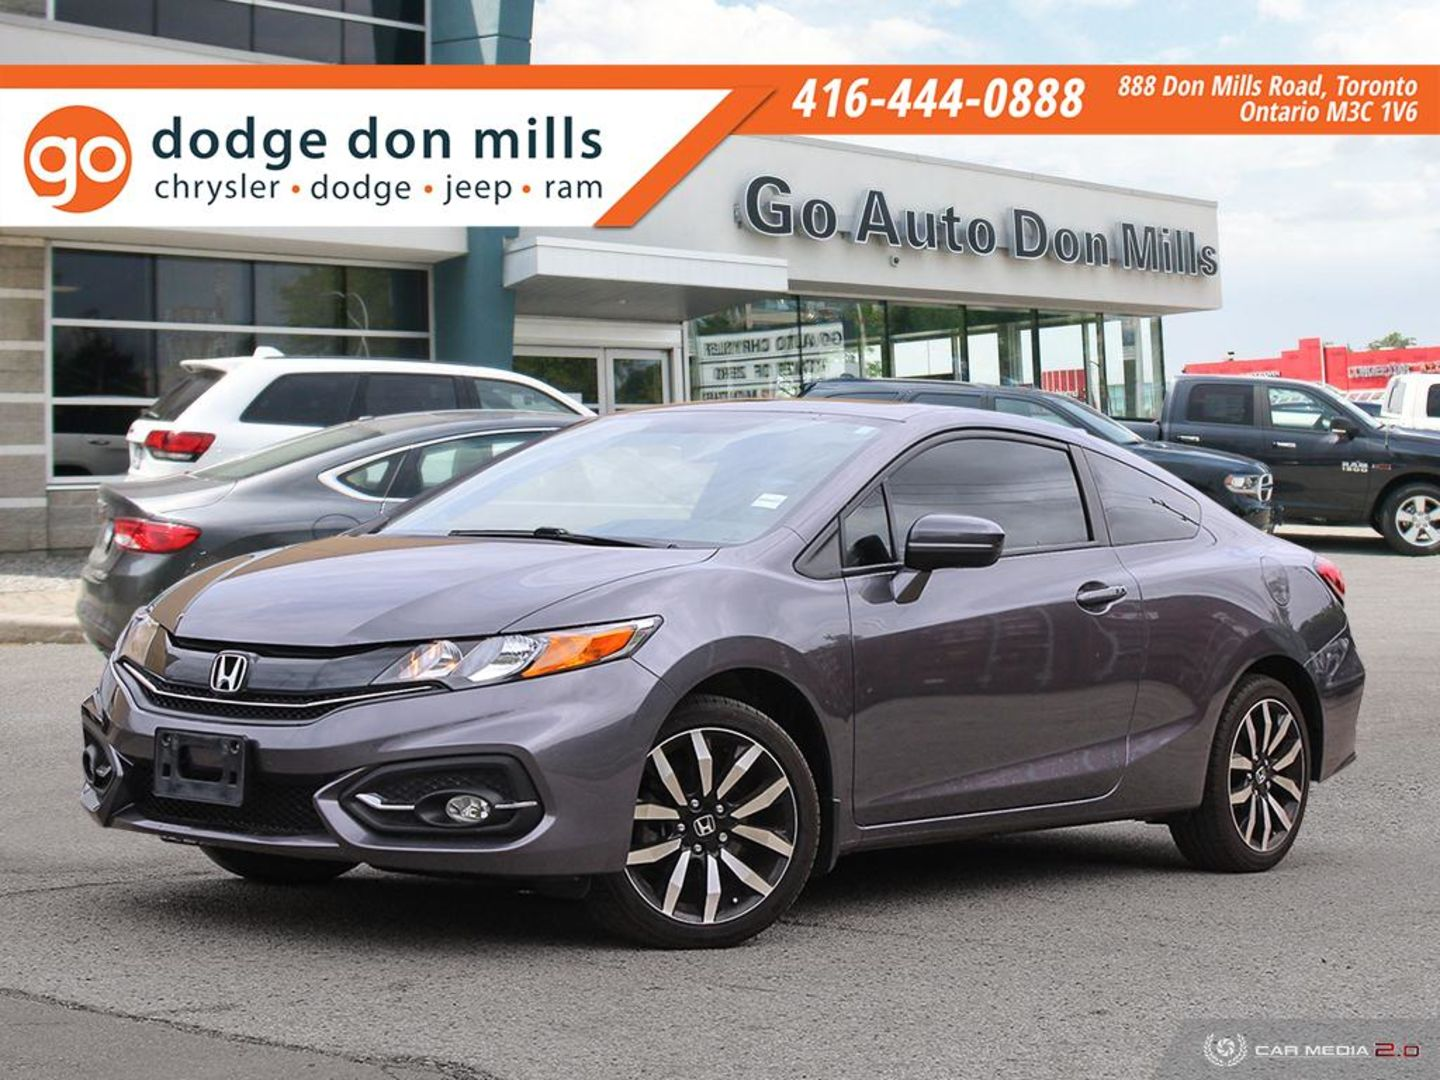 2014 Honda Civic Coupe EX-L for sale in Toronto, Ontario